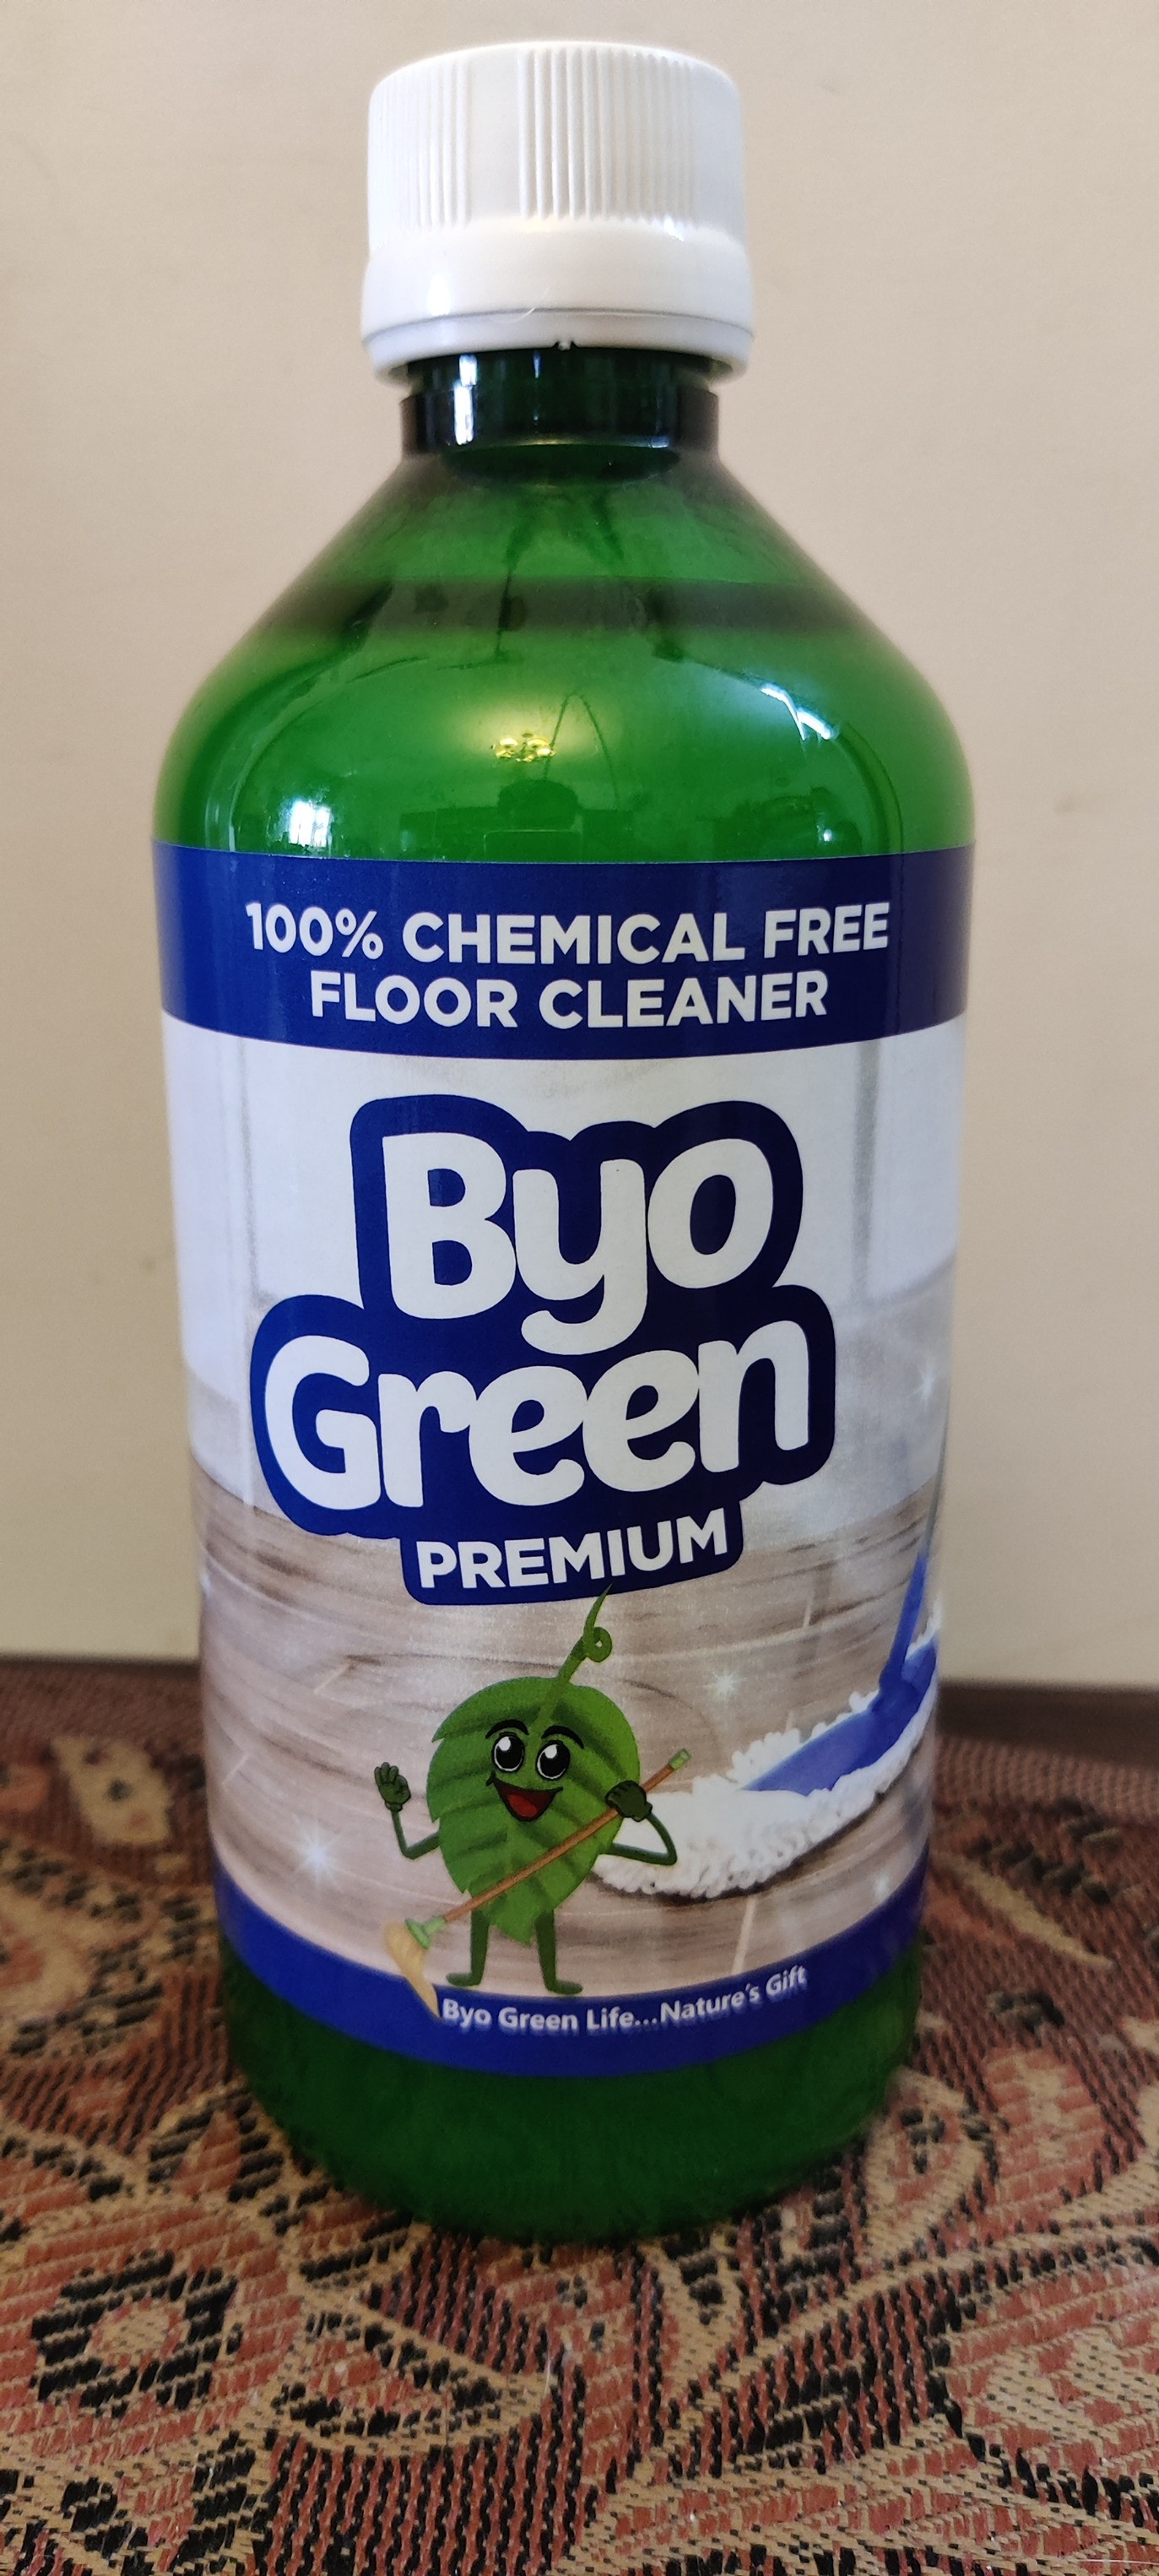 100% Chemical - Free Floor Cleaner